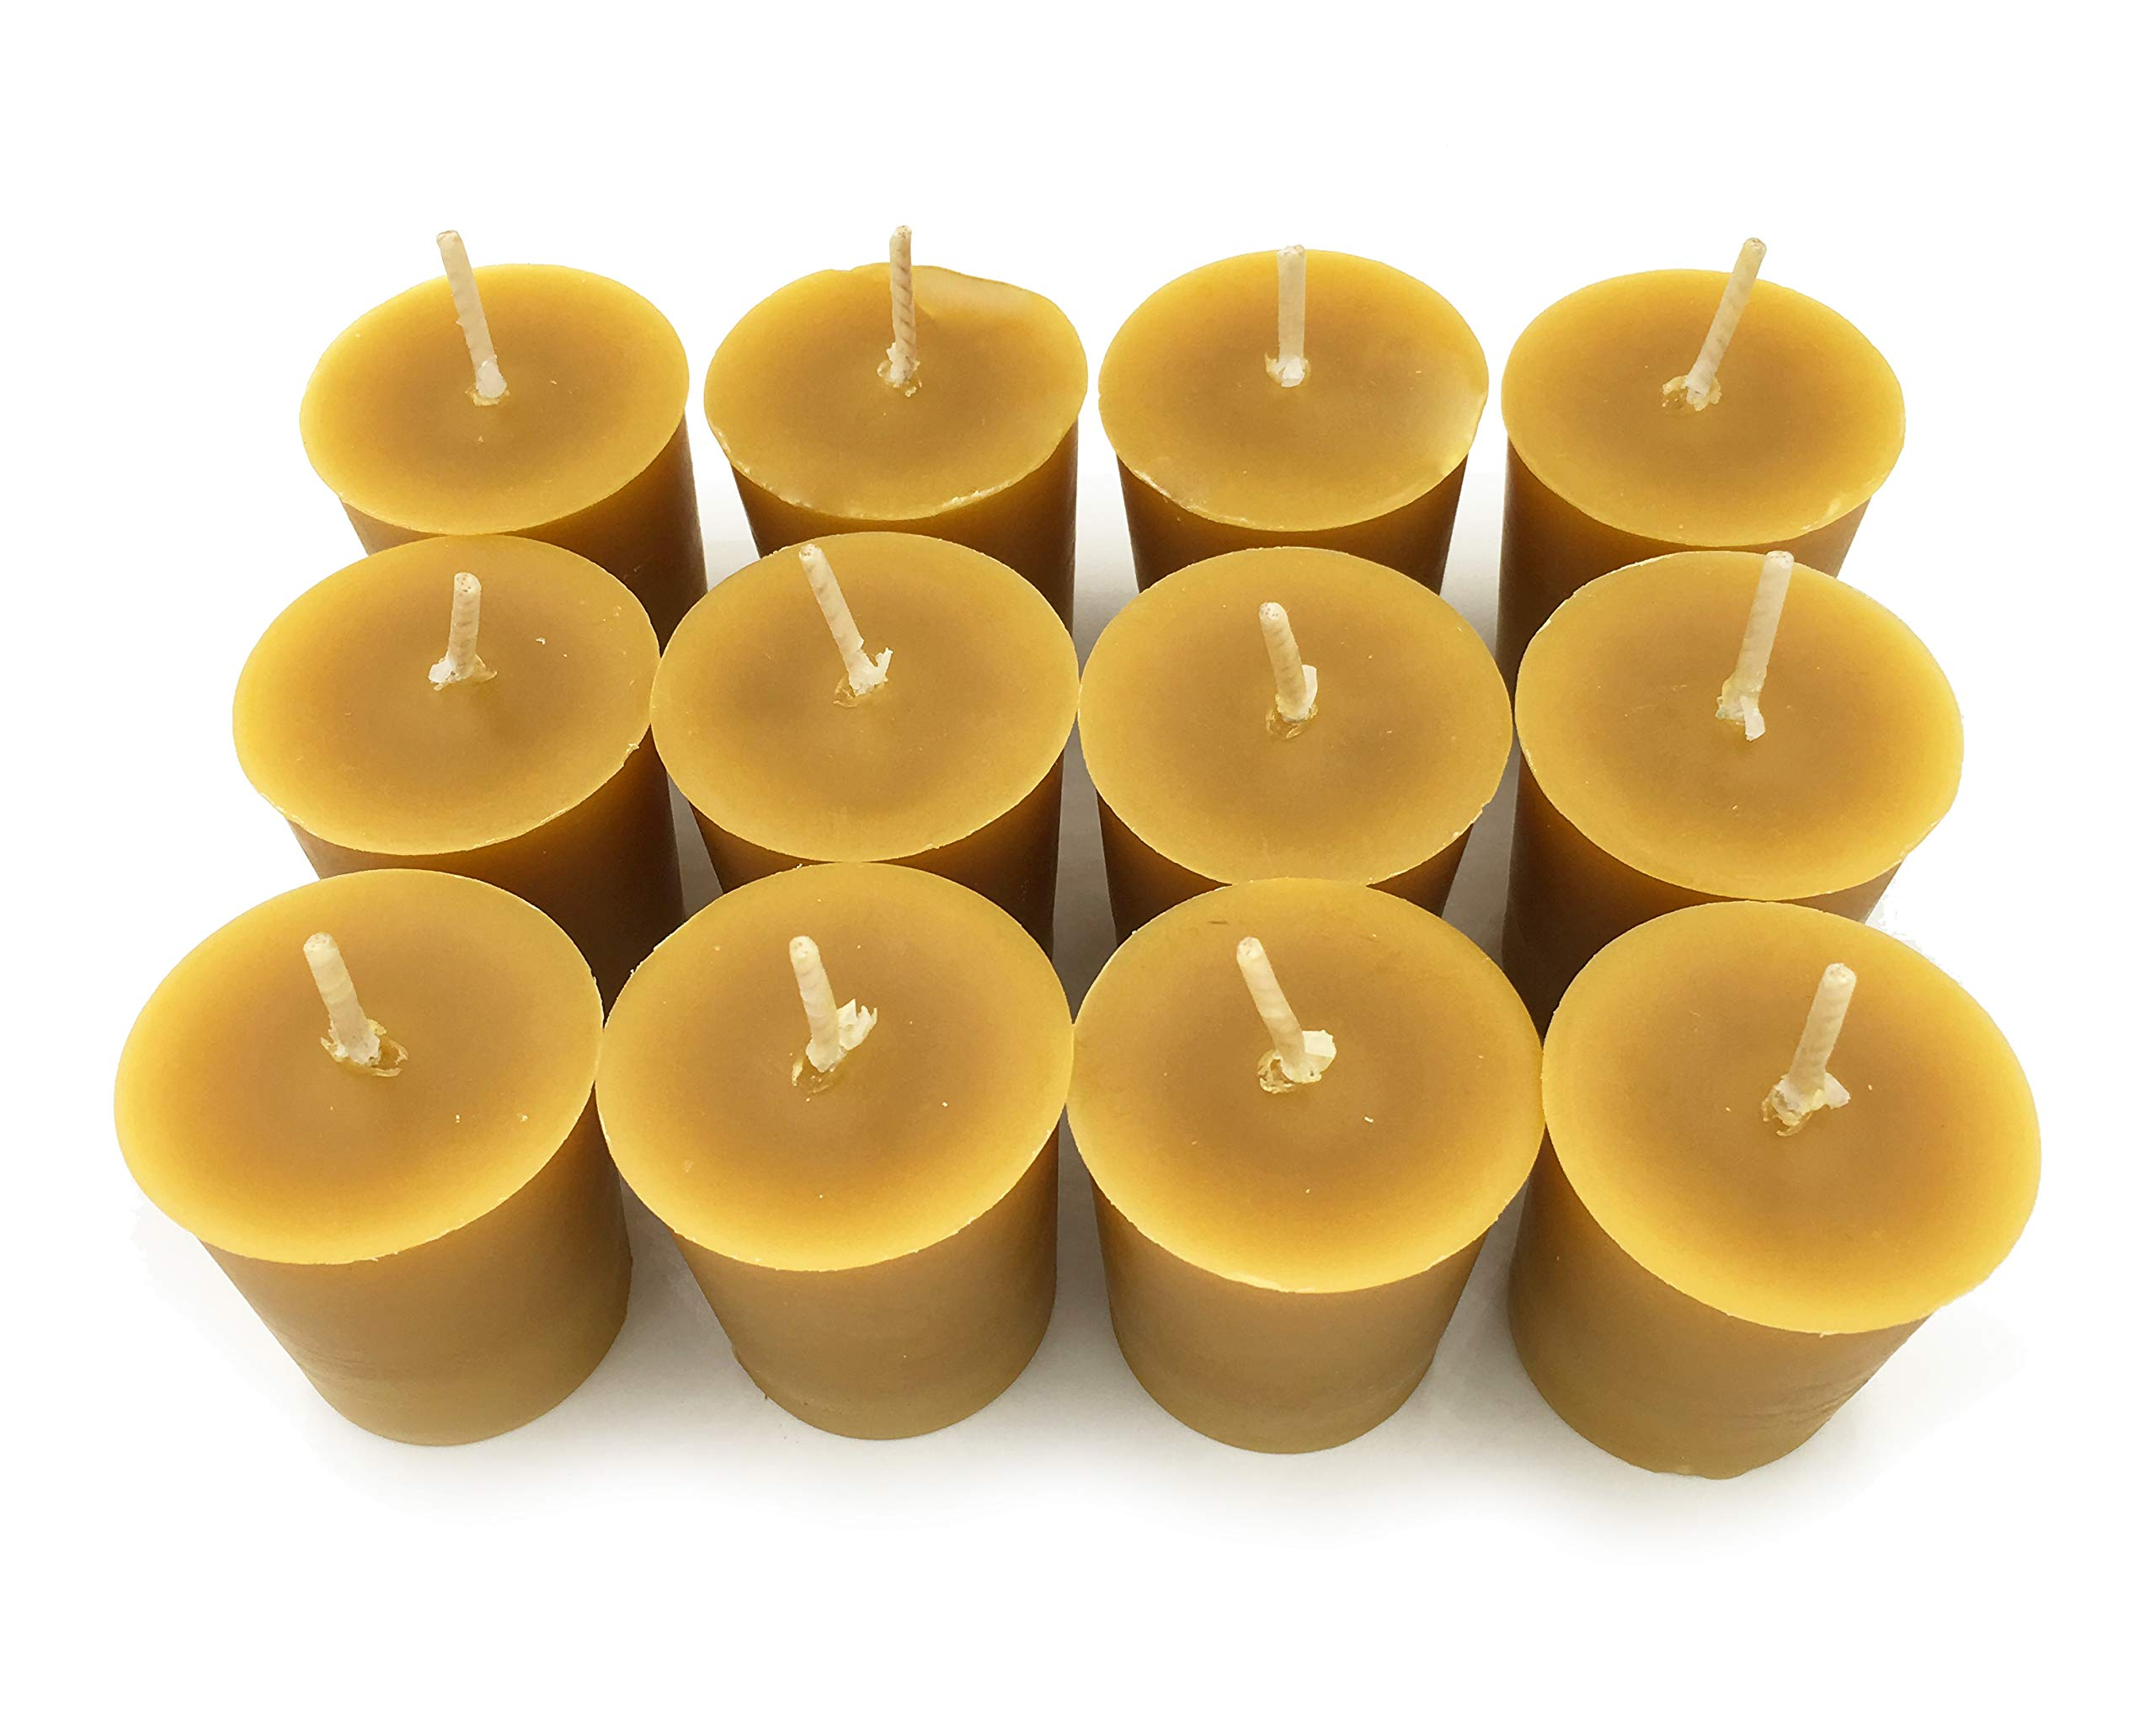 Alternative Imagination Premium 100% Pure, Natural Beeswax Votive Candles - Pack of 12